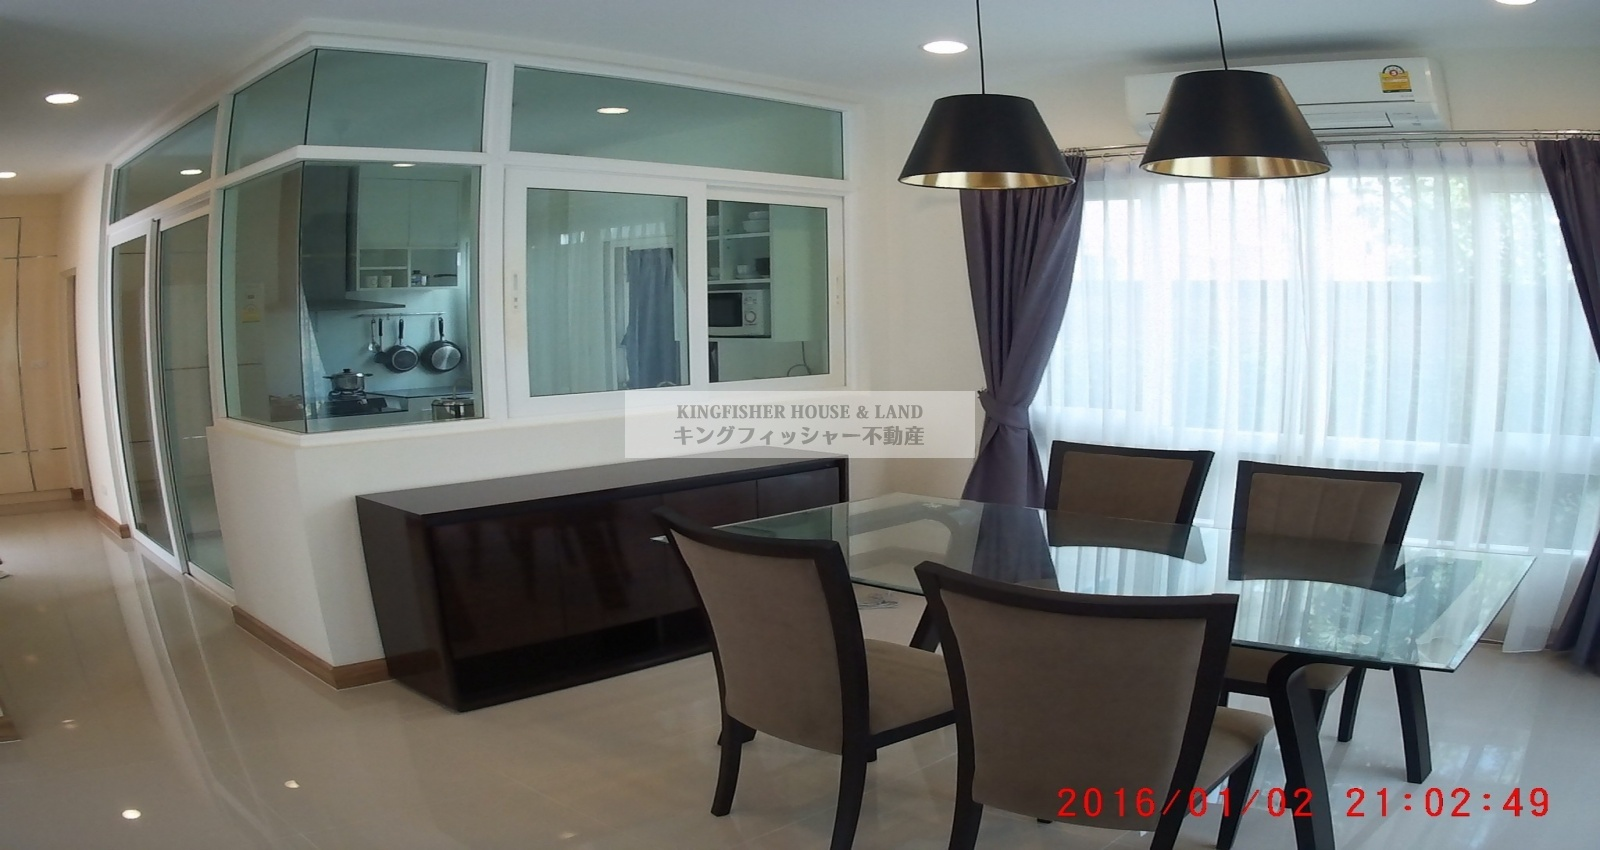 3 Bedrooms, House, For Rent, 3 Bathrooms, Listing ID 1173, Sriracha, Thailand, 20110,